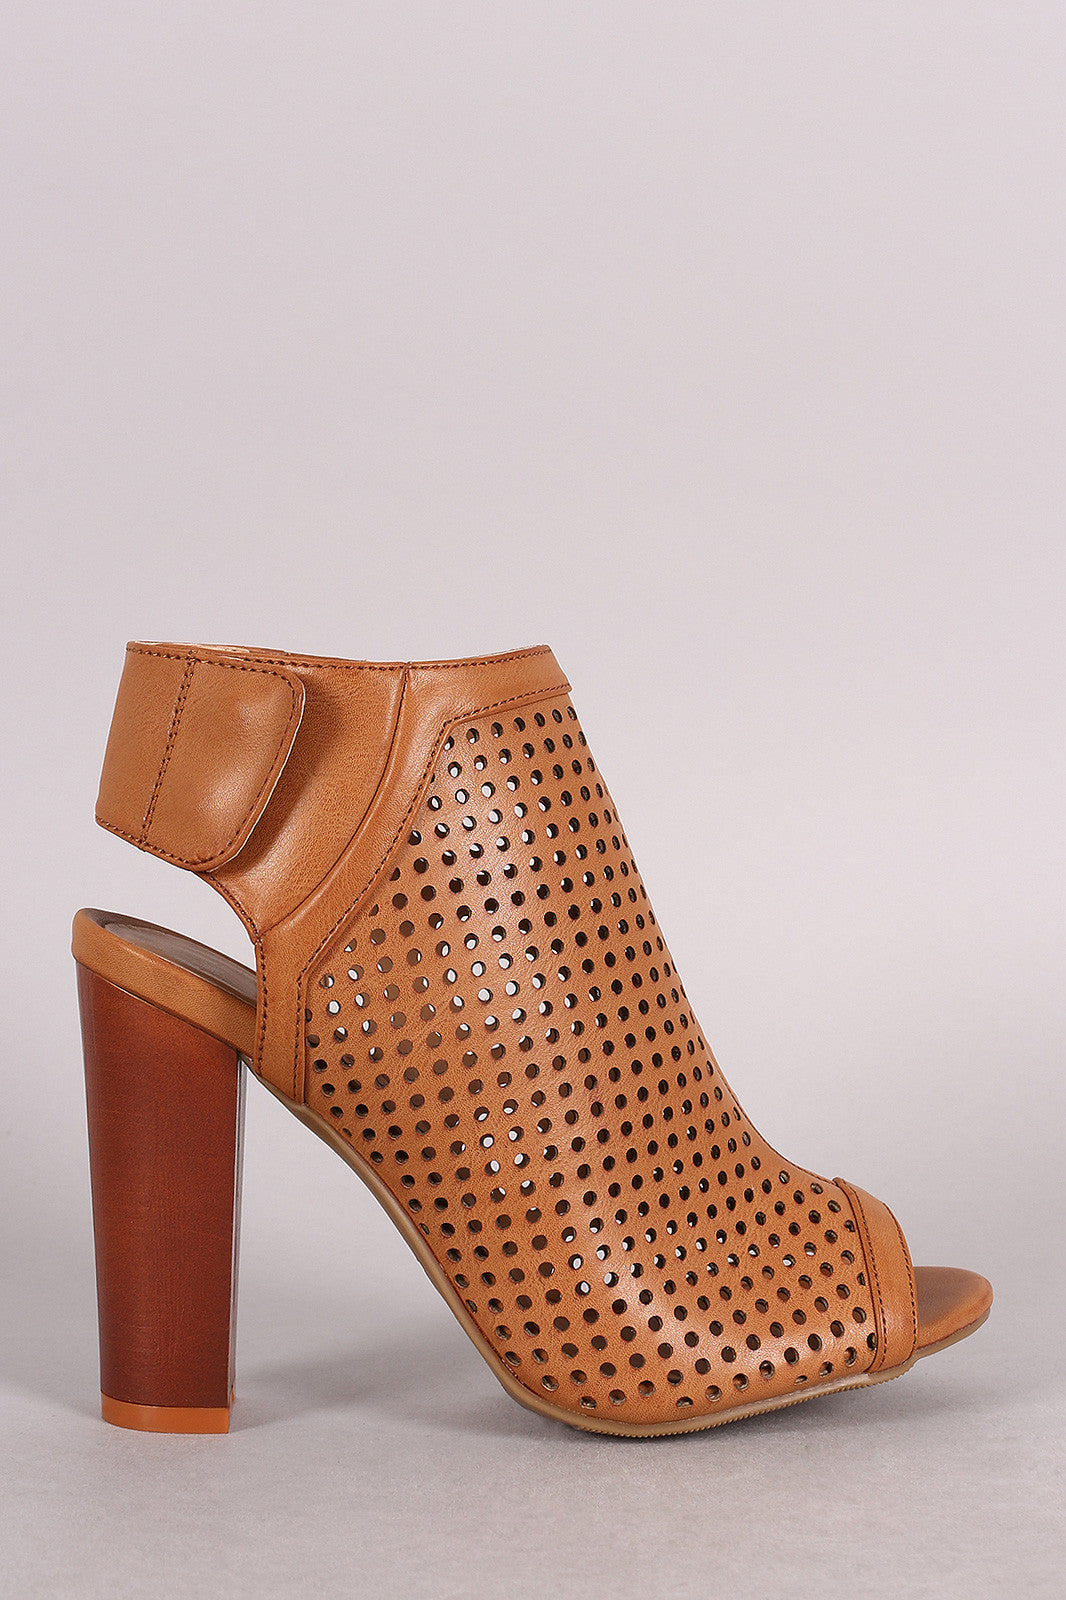 Bamboo Perforated Peep Toe Chunky Mule Heel - Thick 'N' Curvy Shop - 1